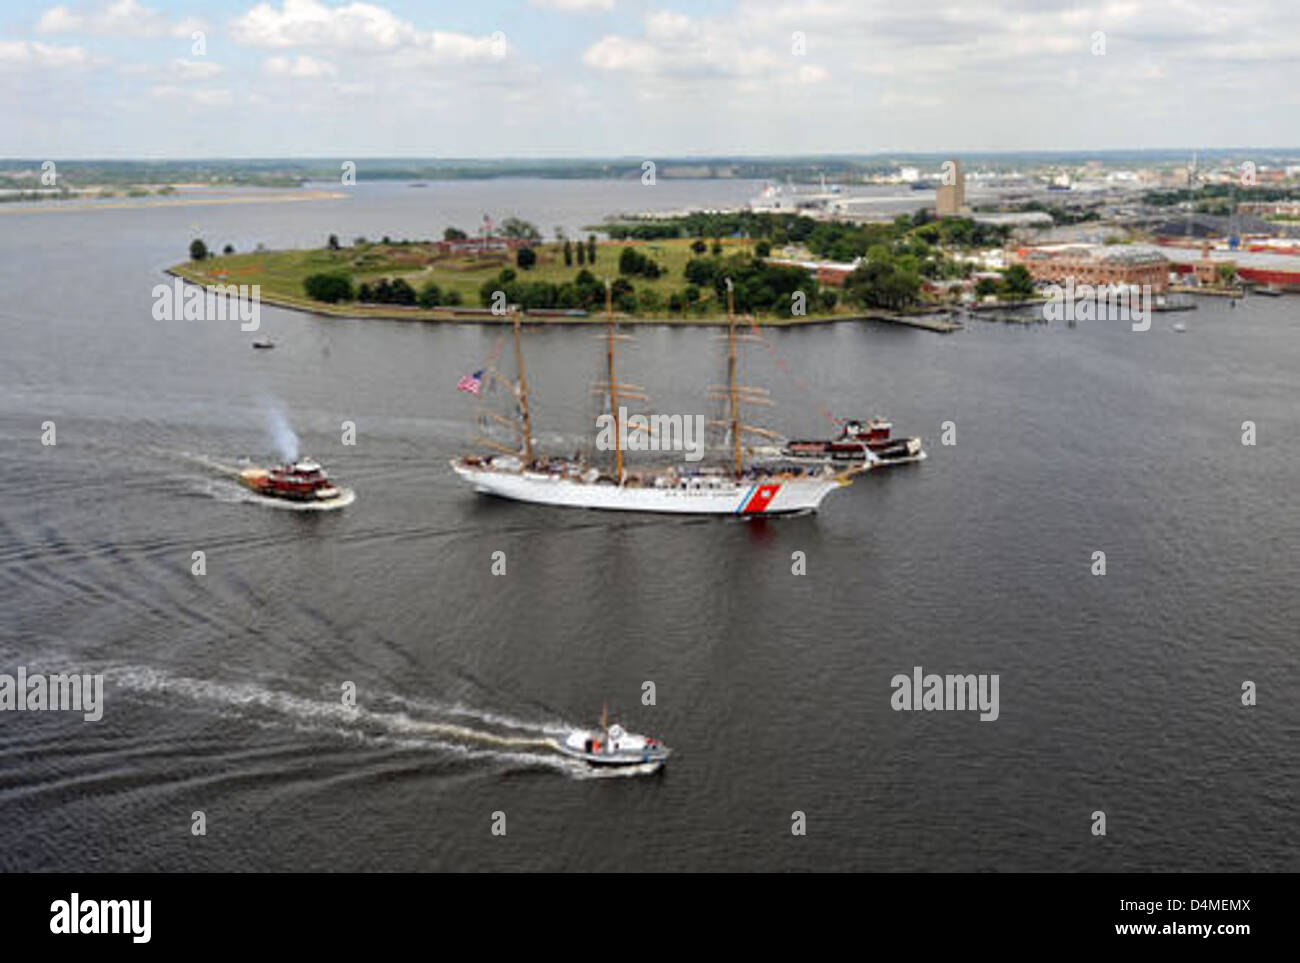 Coast Guard Cutter Eagle arrives in Baltimore for OpSail - Stock Image